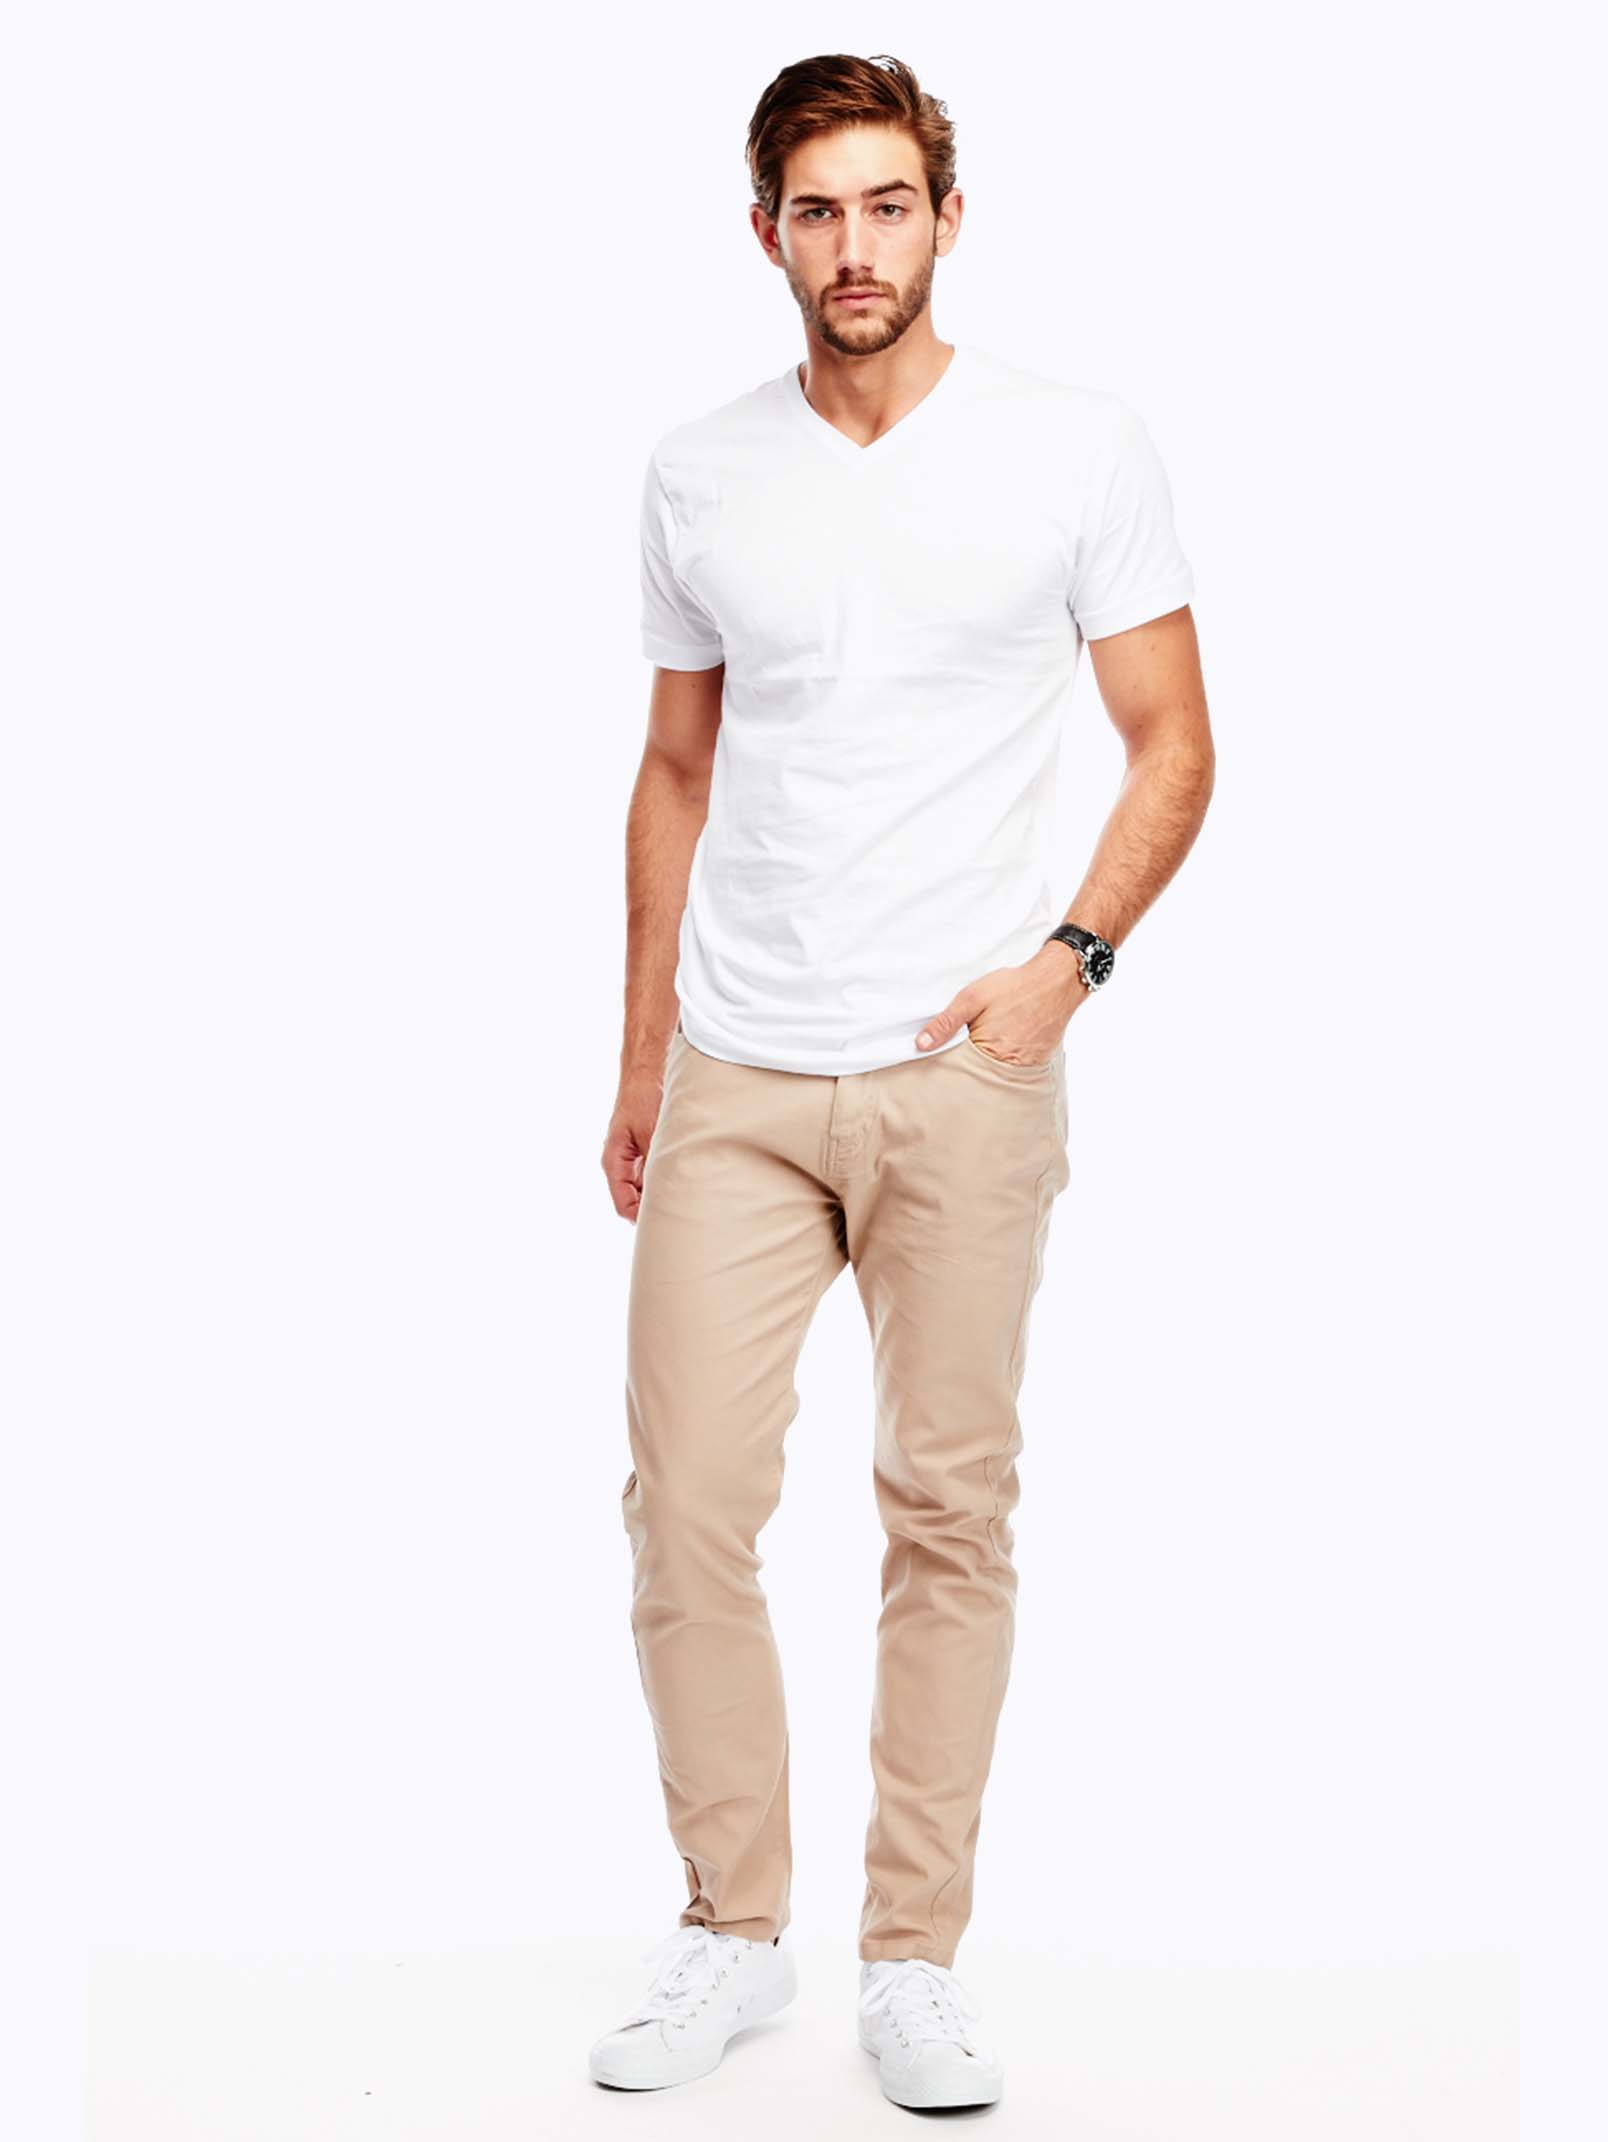 Mens Dress Shoes For Skinny Jeans